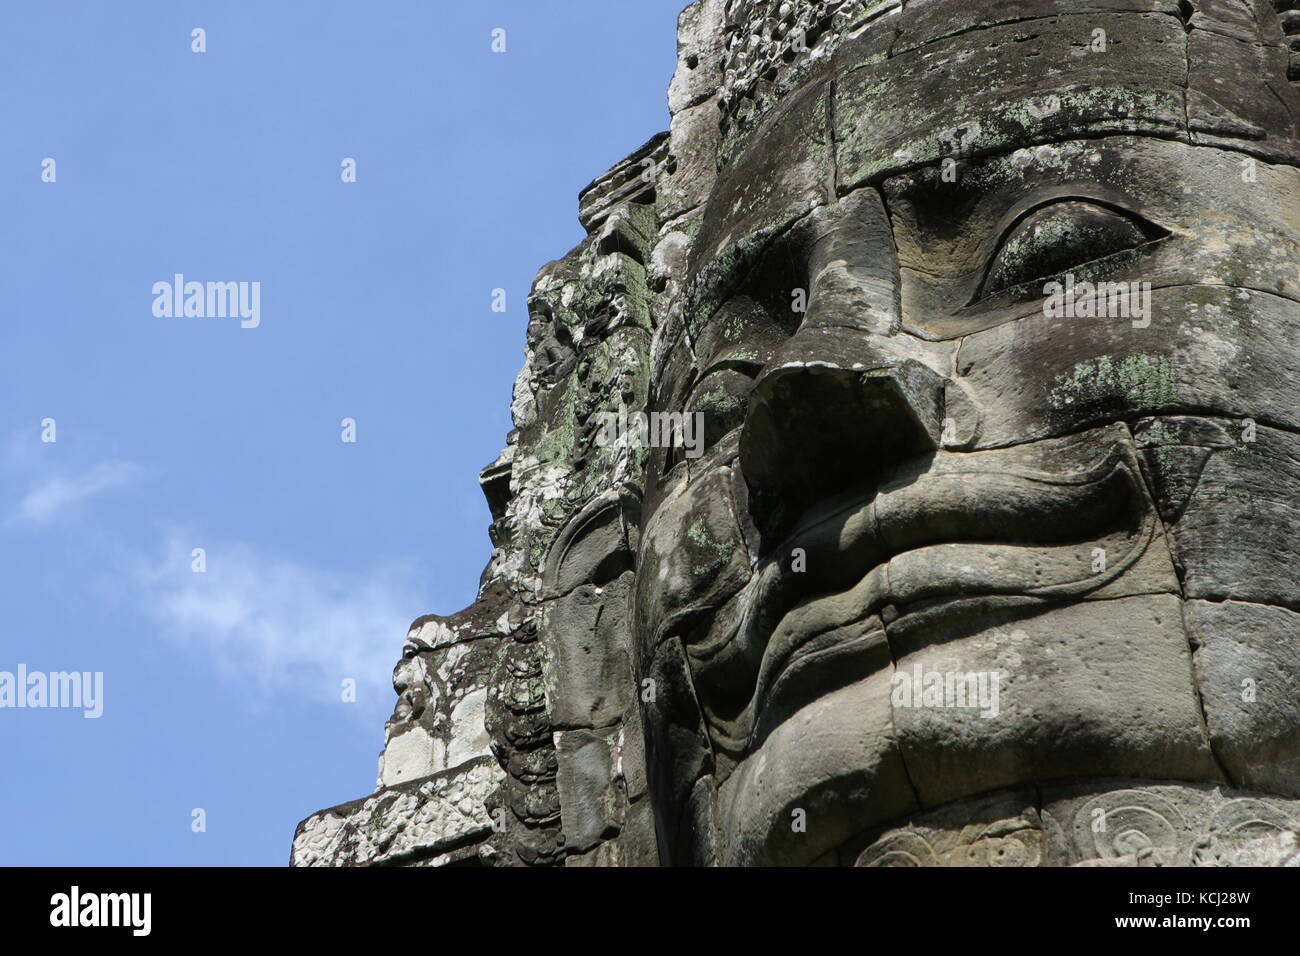 Stein Skulptur im Bayon Tempel - Stone sculpture in the Bayon temple - Stock Image